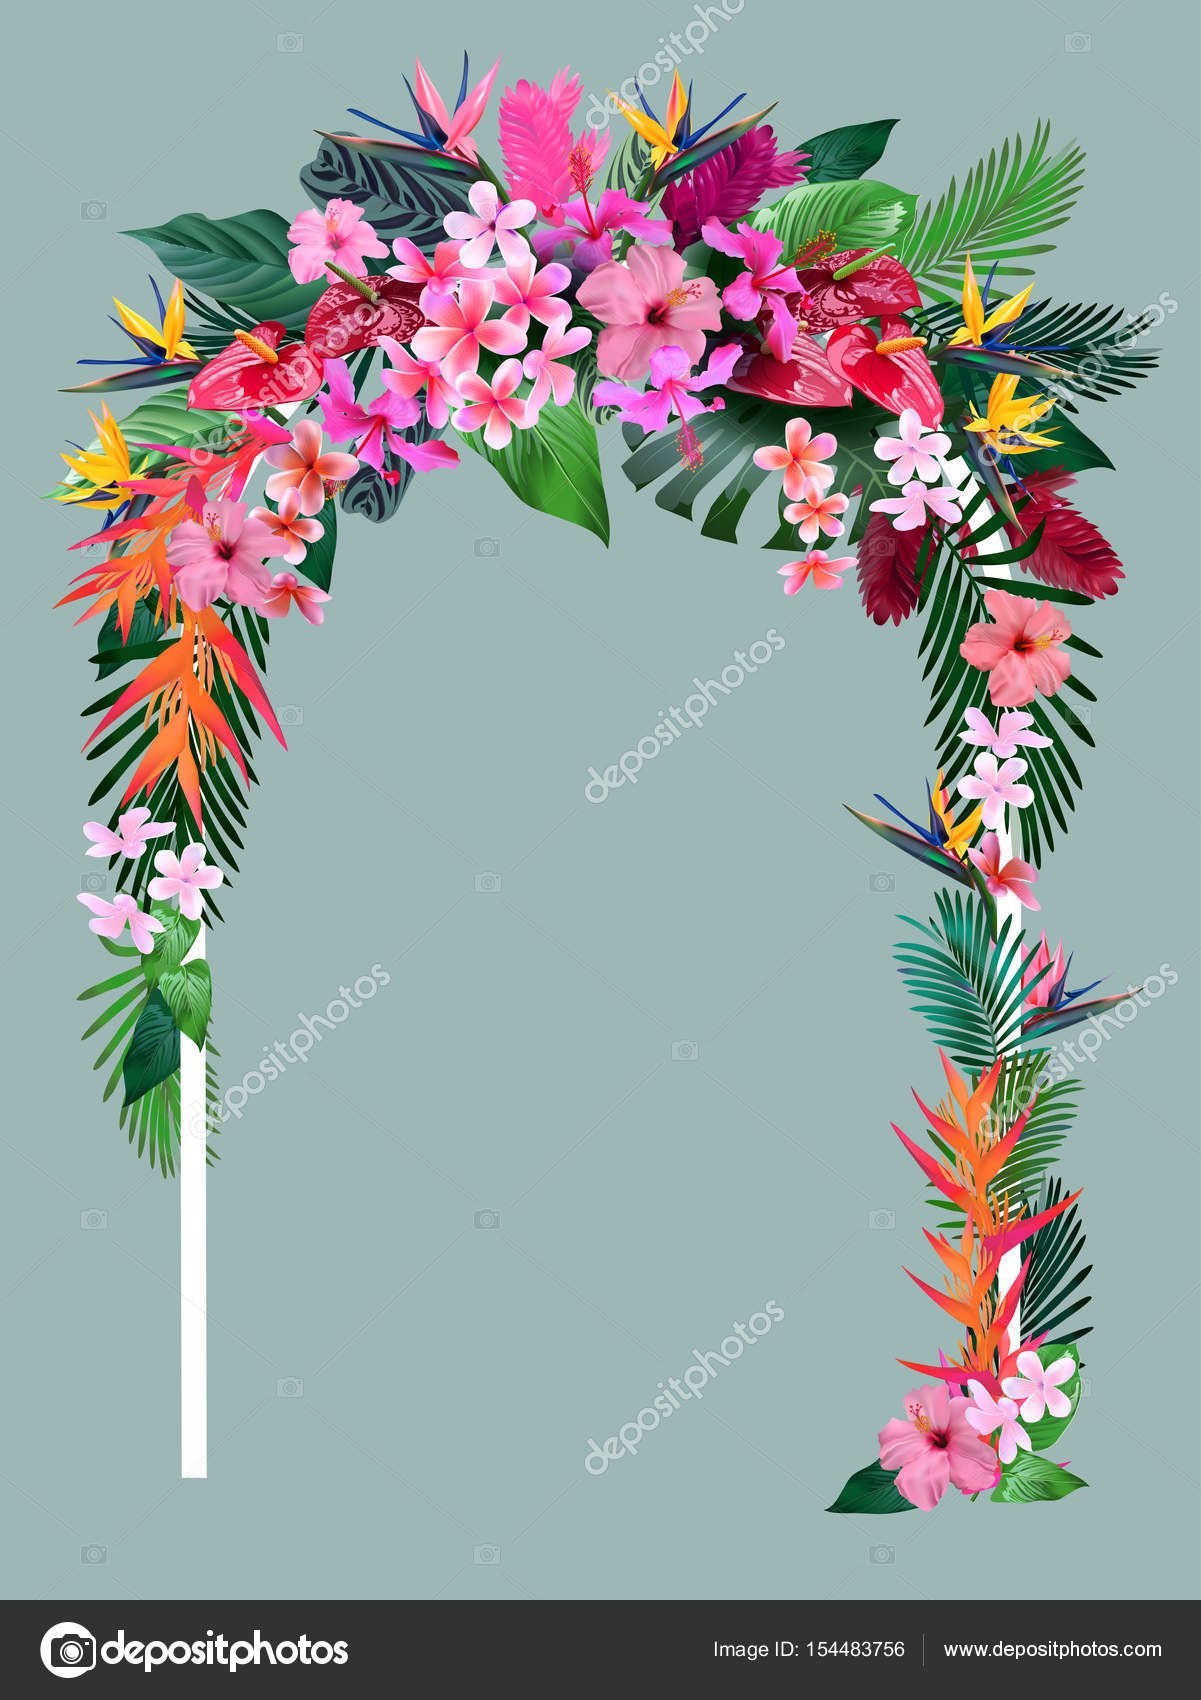 wedding arch from tropical flowers for invitations to the wedding